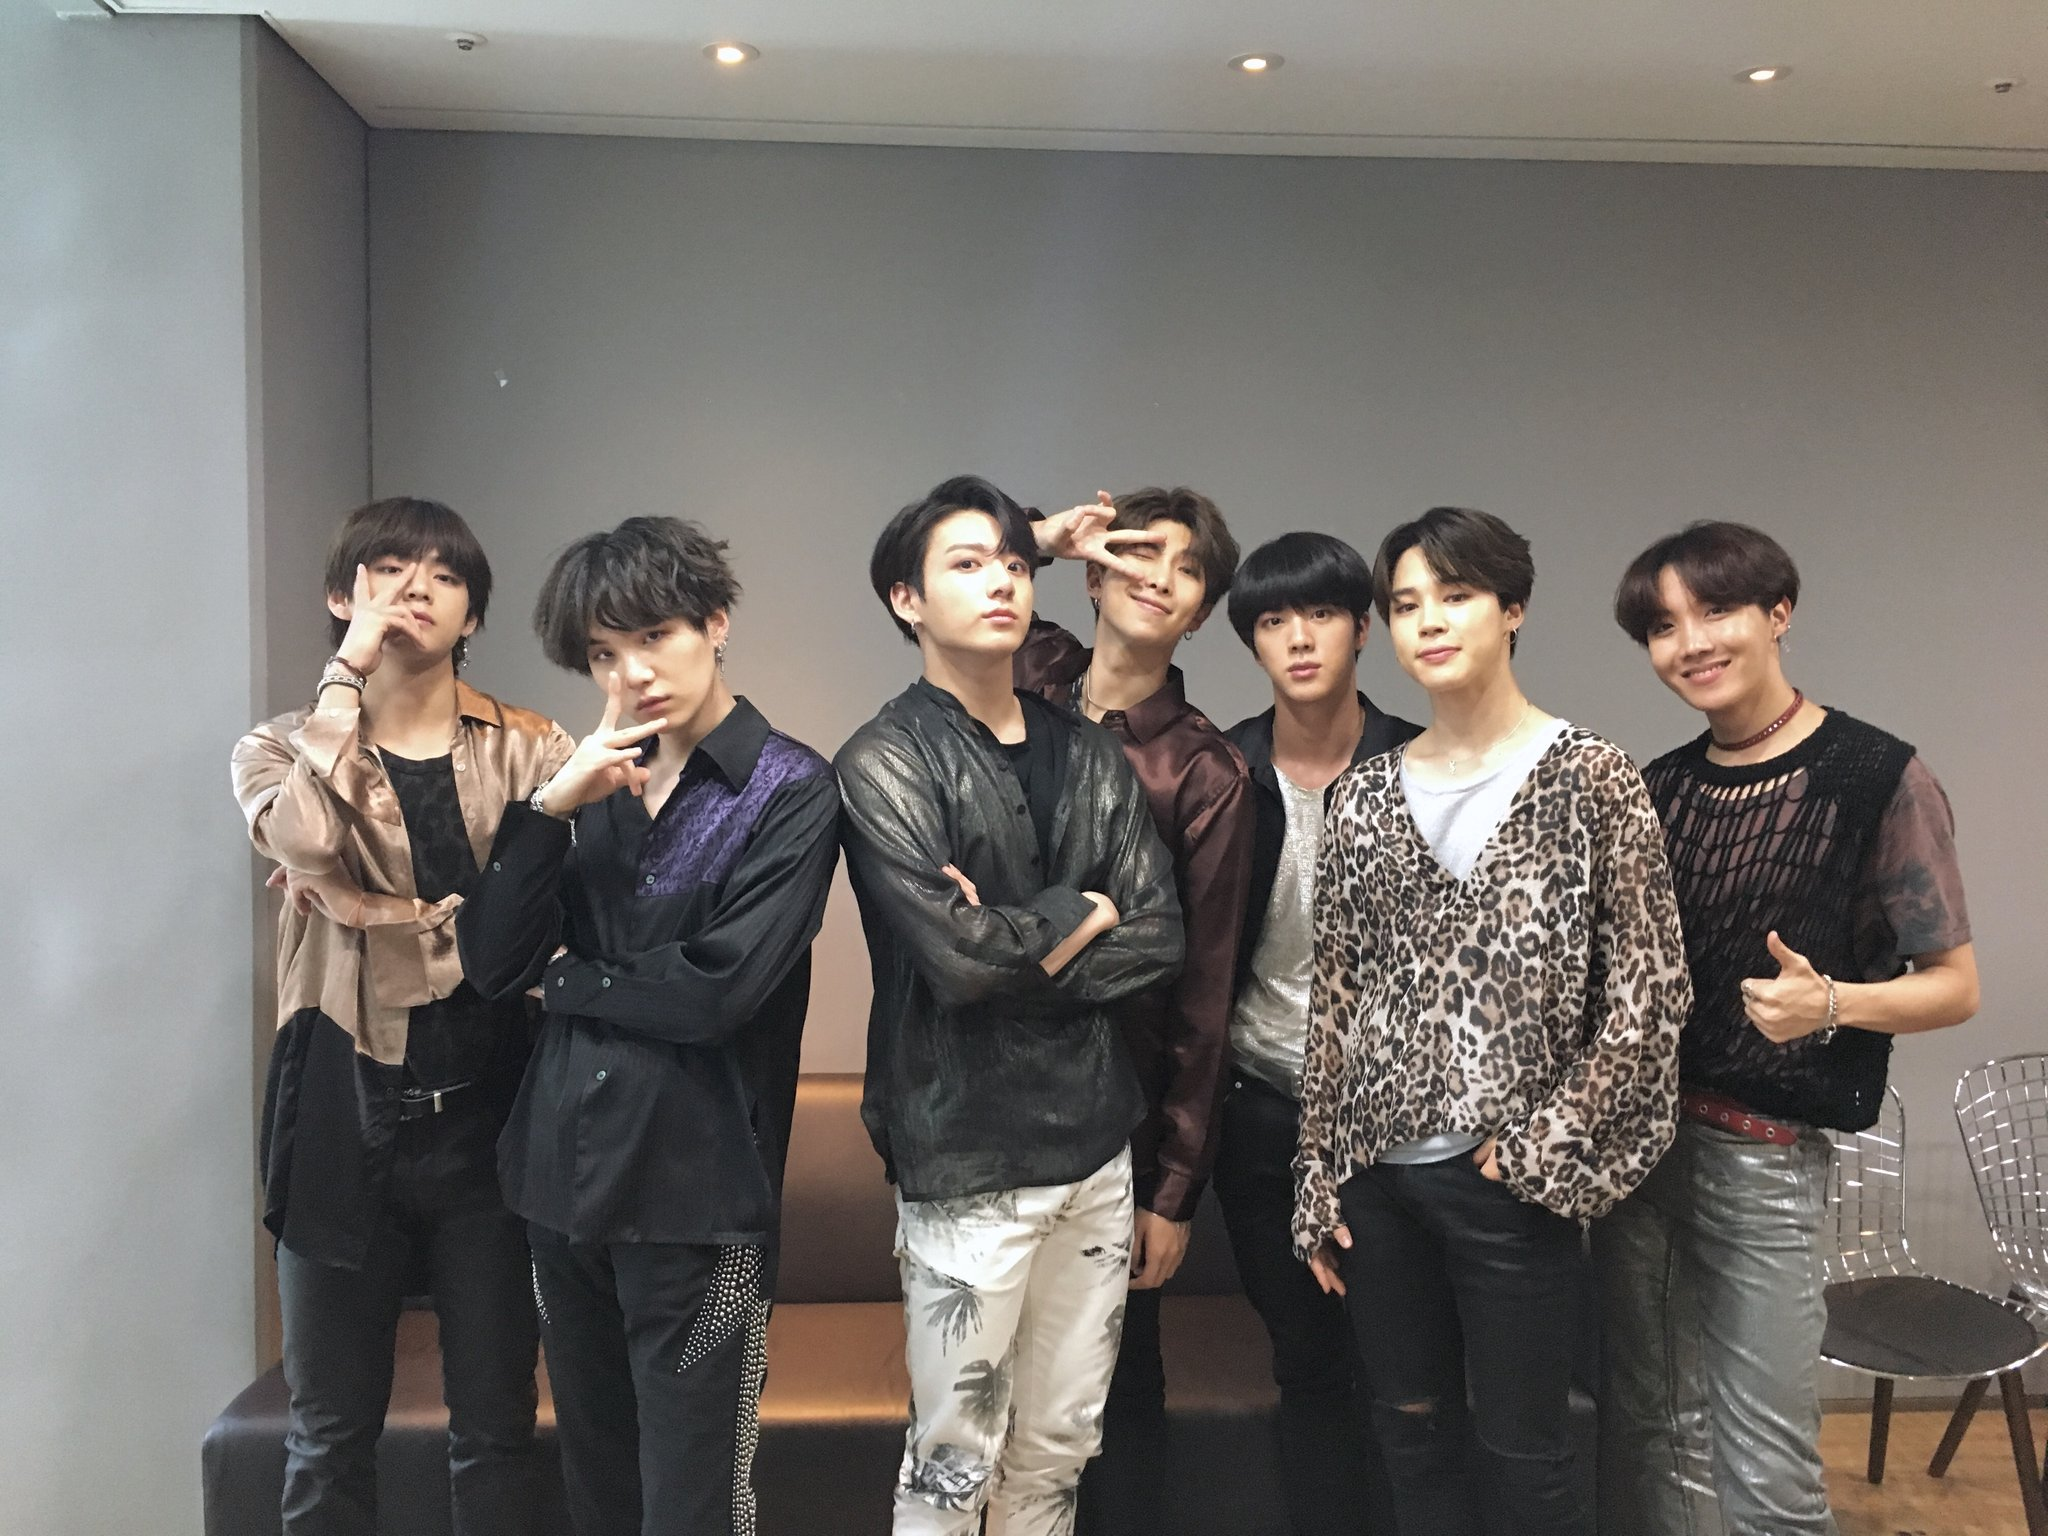 BTS_official on Twitter